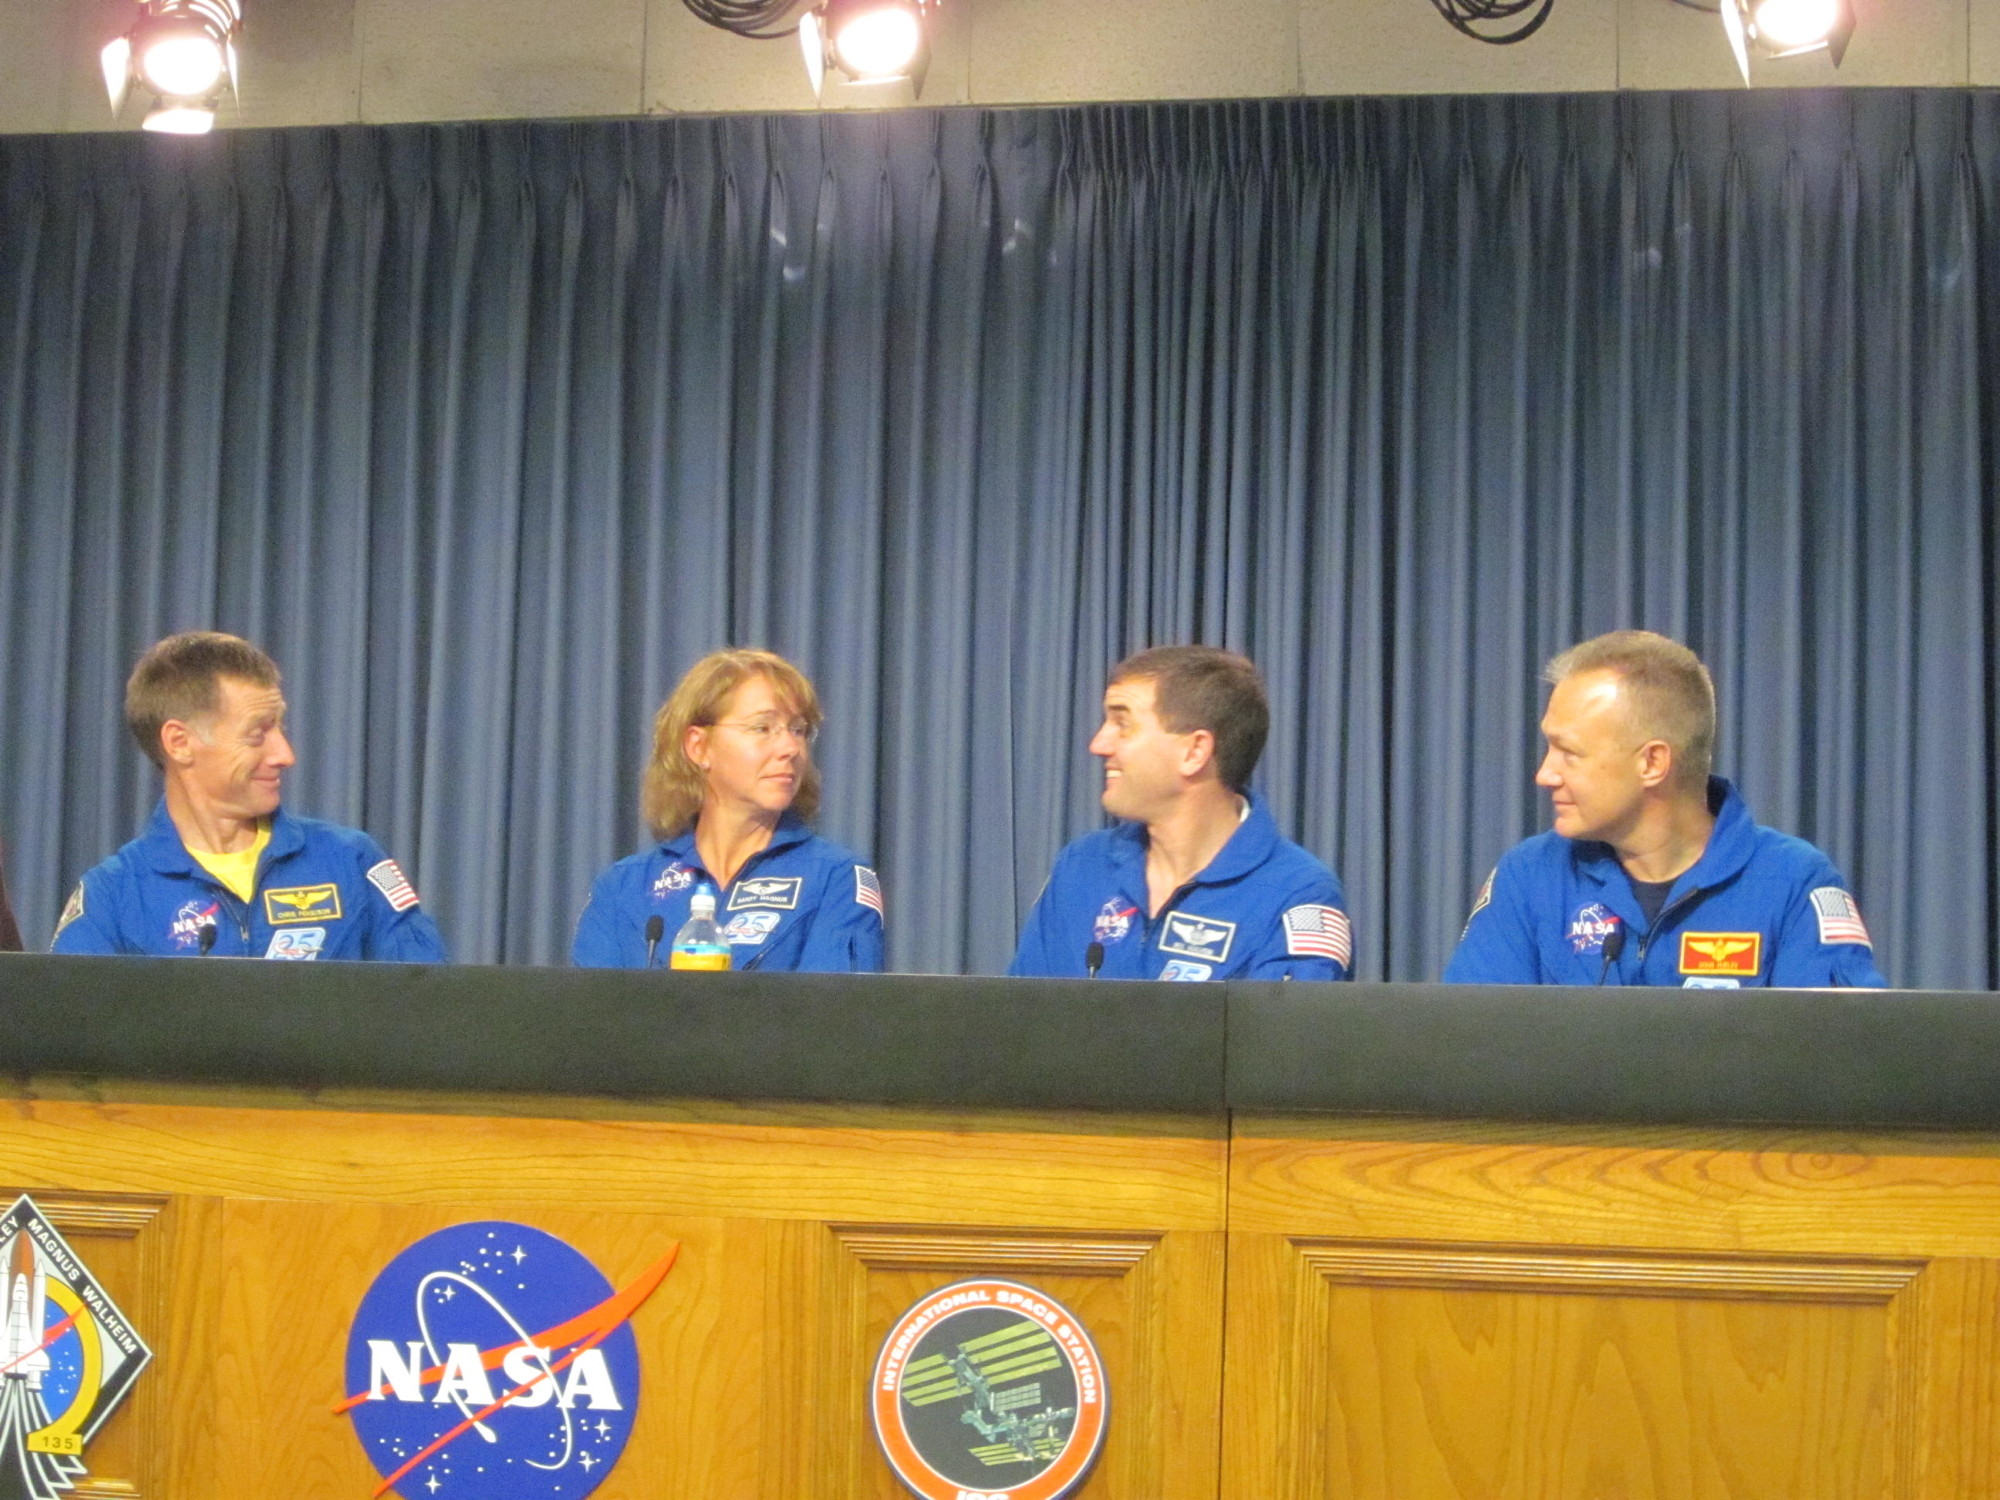 Atlantis Crew Seated at Desk During Post-Landing Press Conference